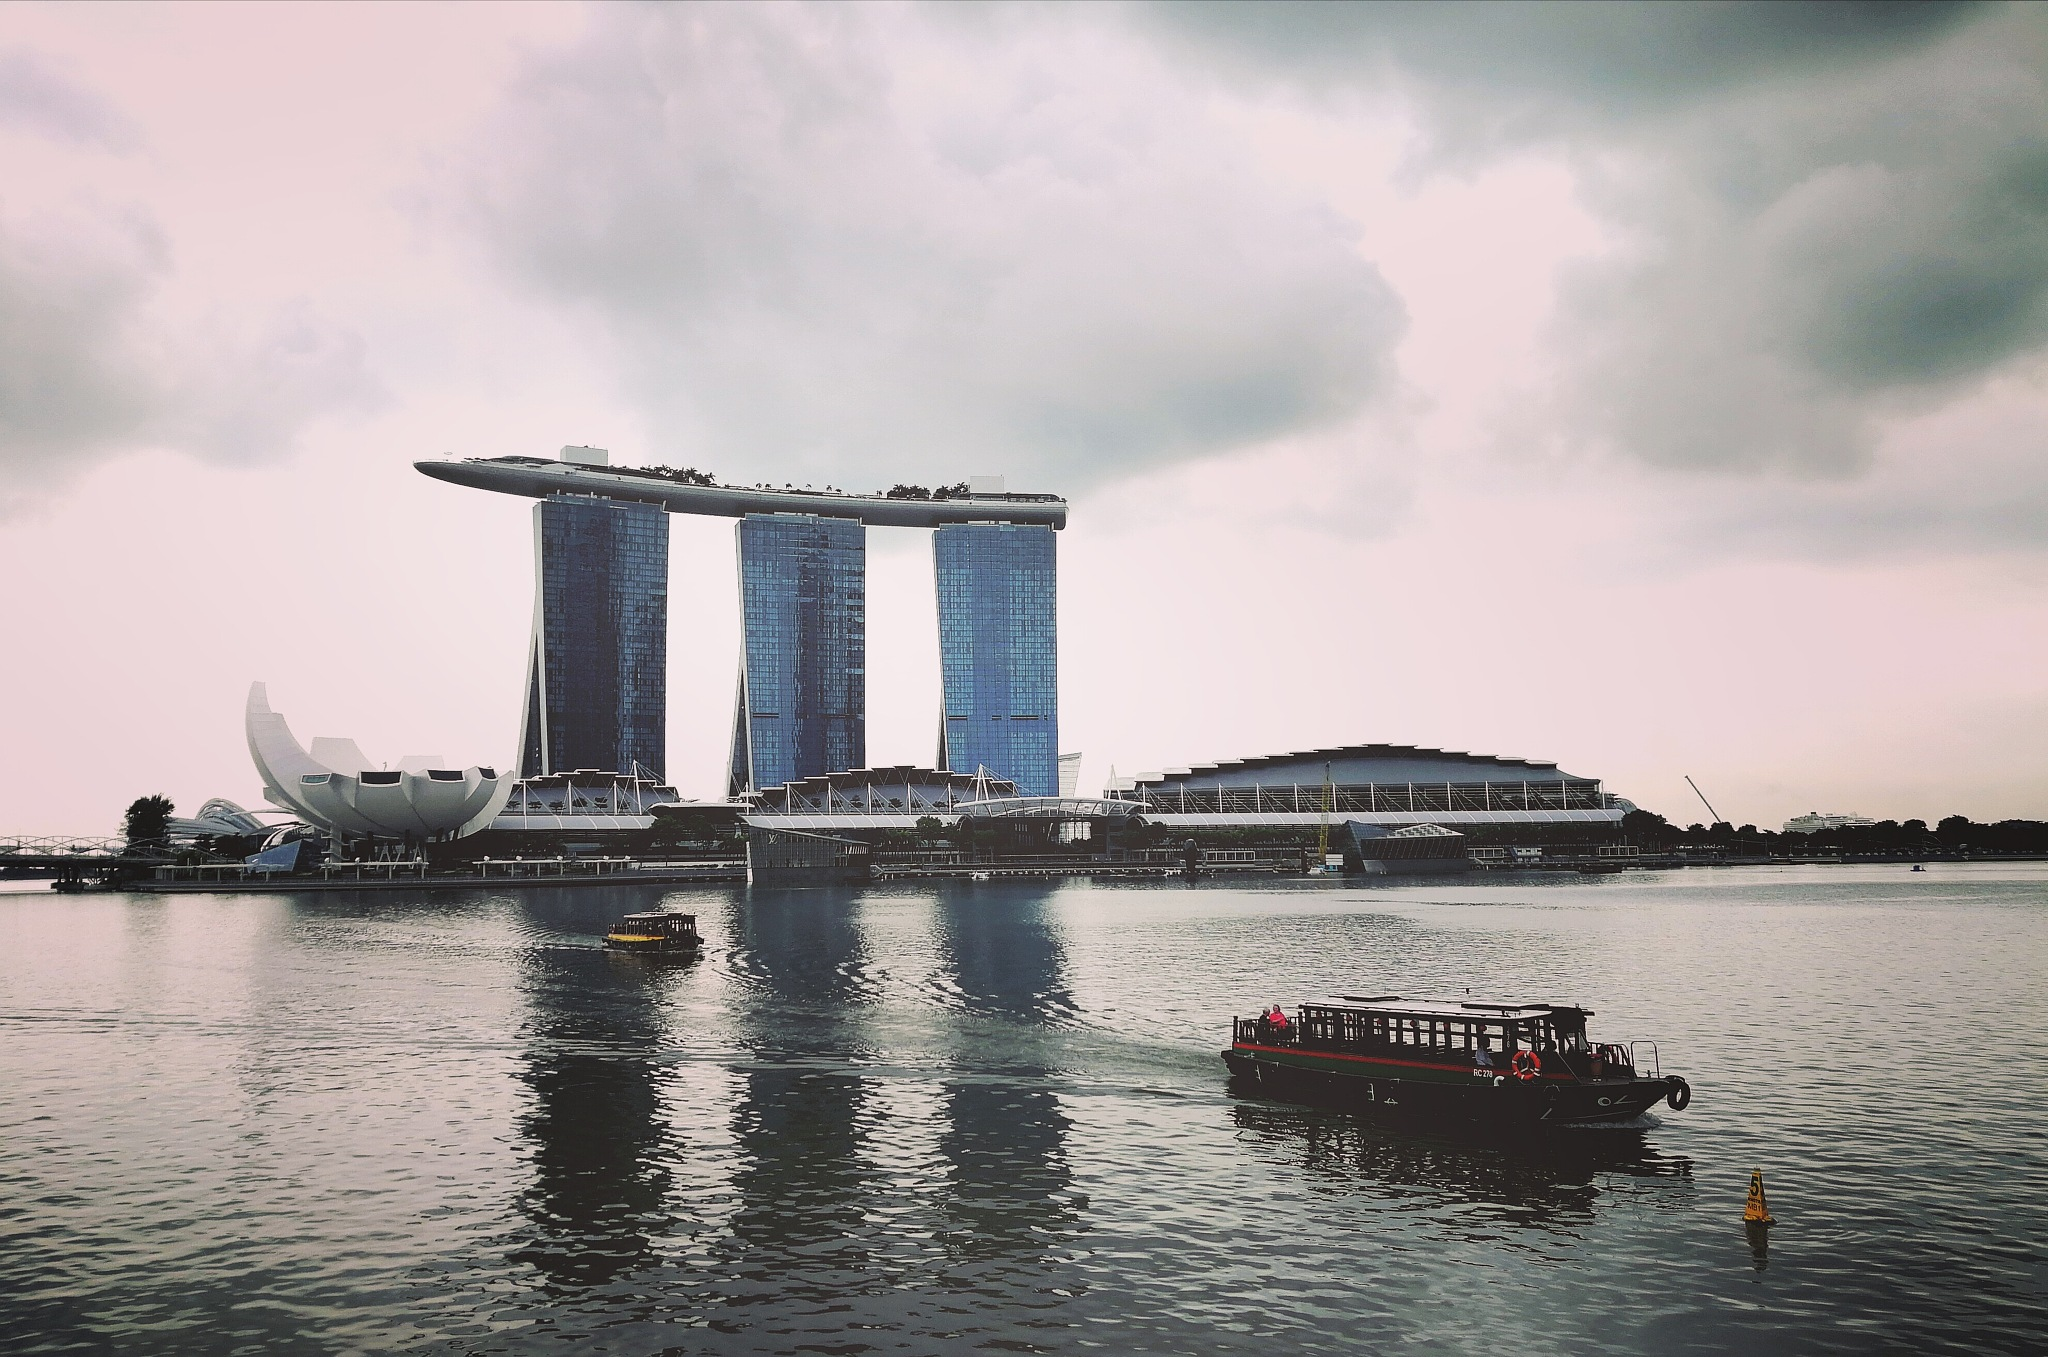 Marina Bay sands @ Singapore by Angella